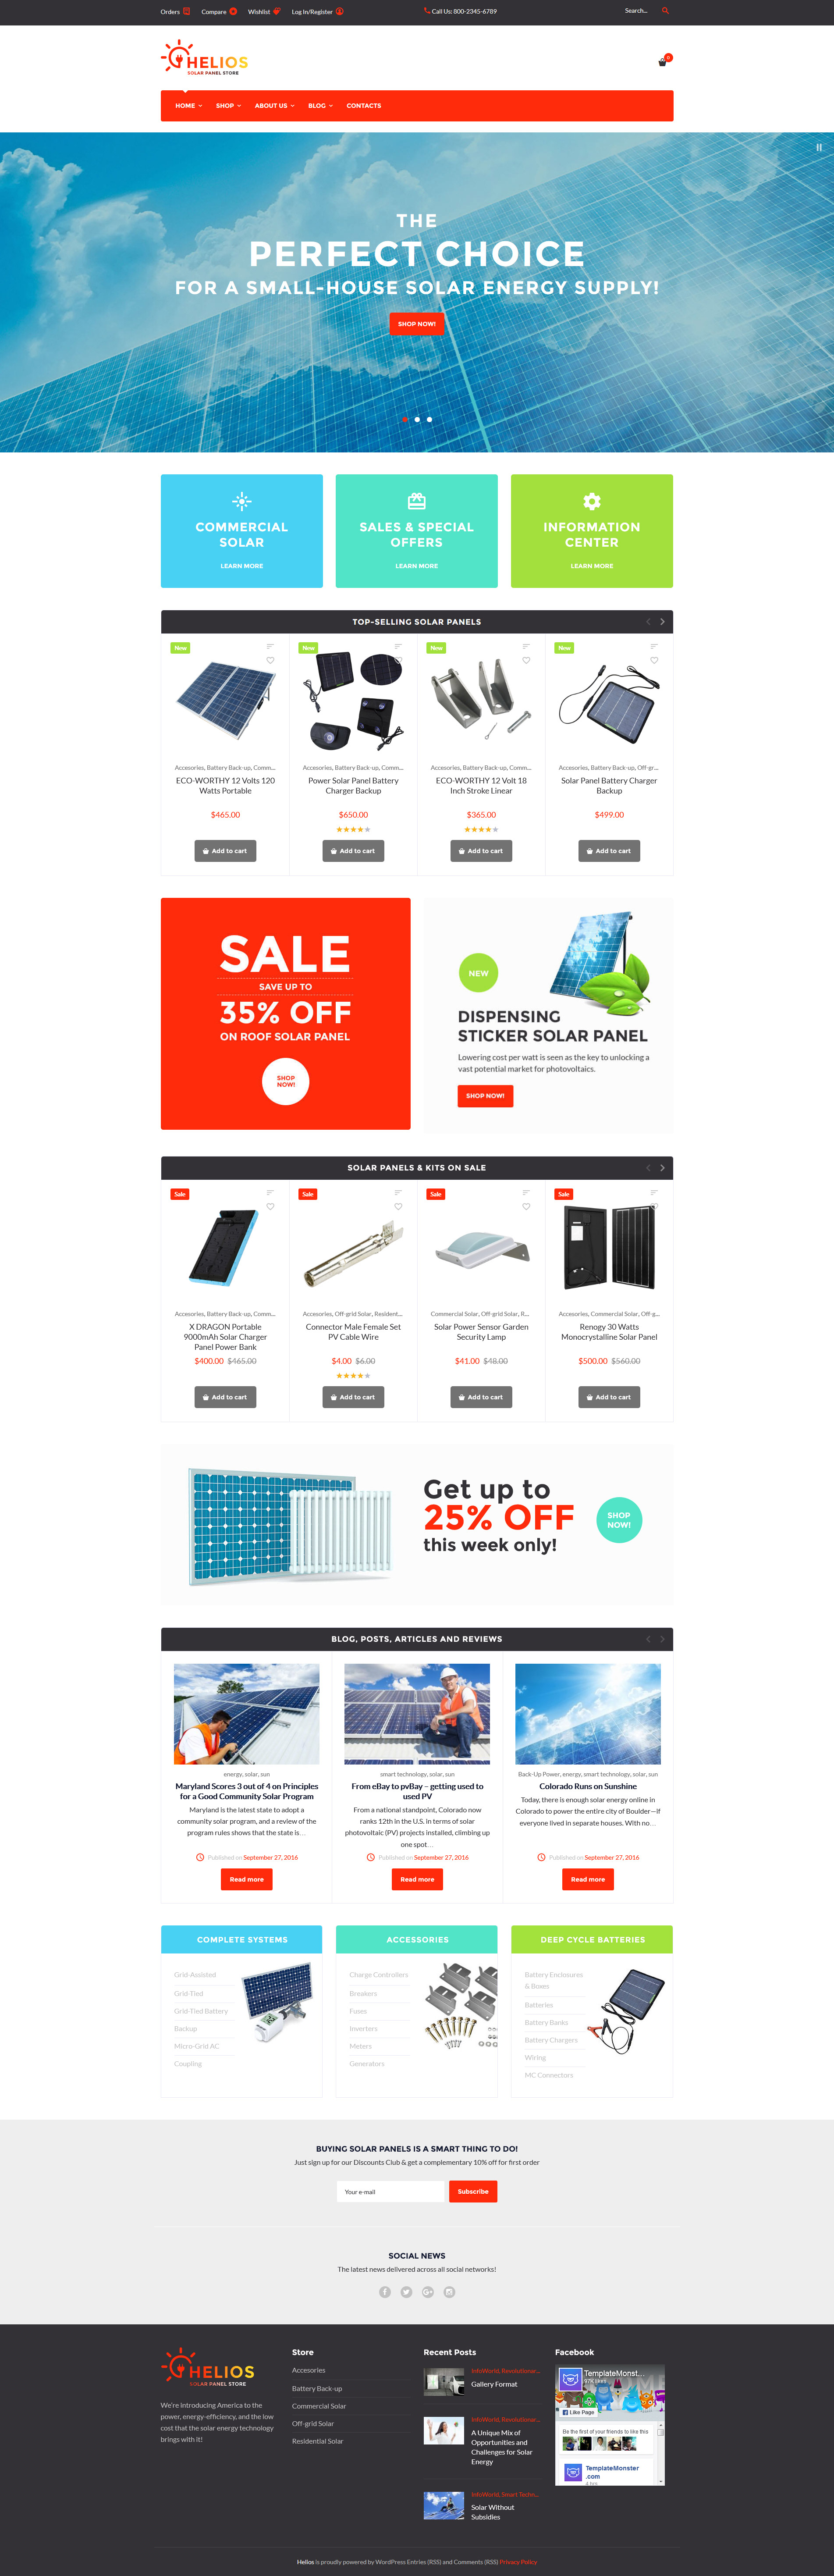 Helios - Solar Panels and Accessories Store №59040 - скриншот